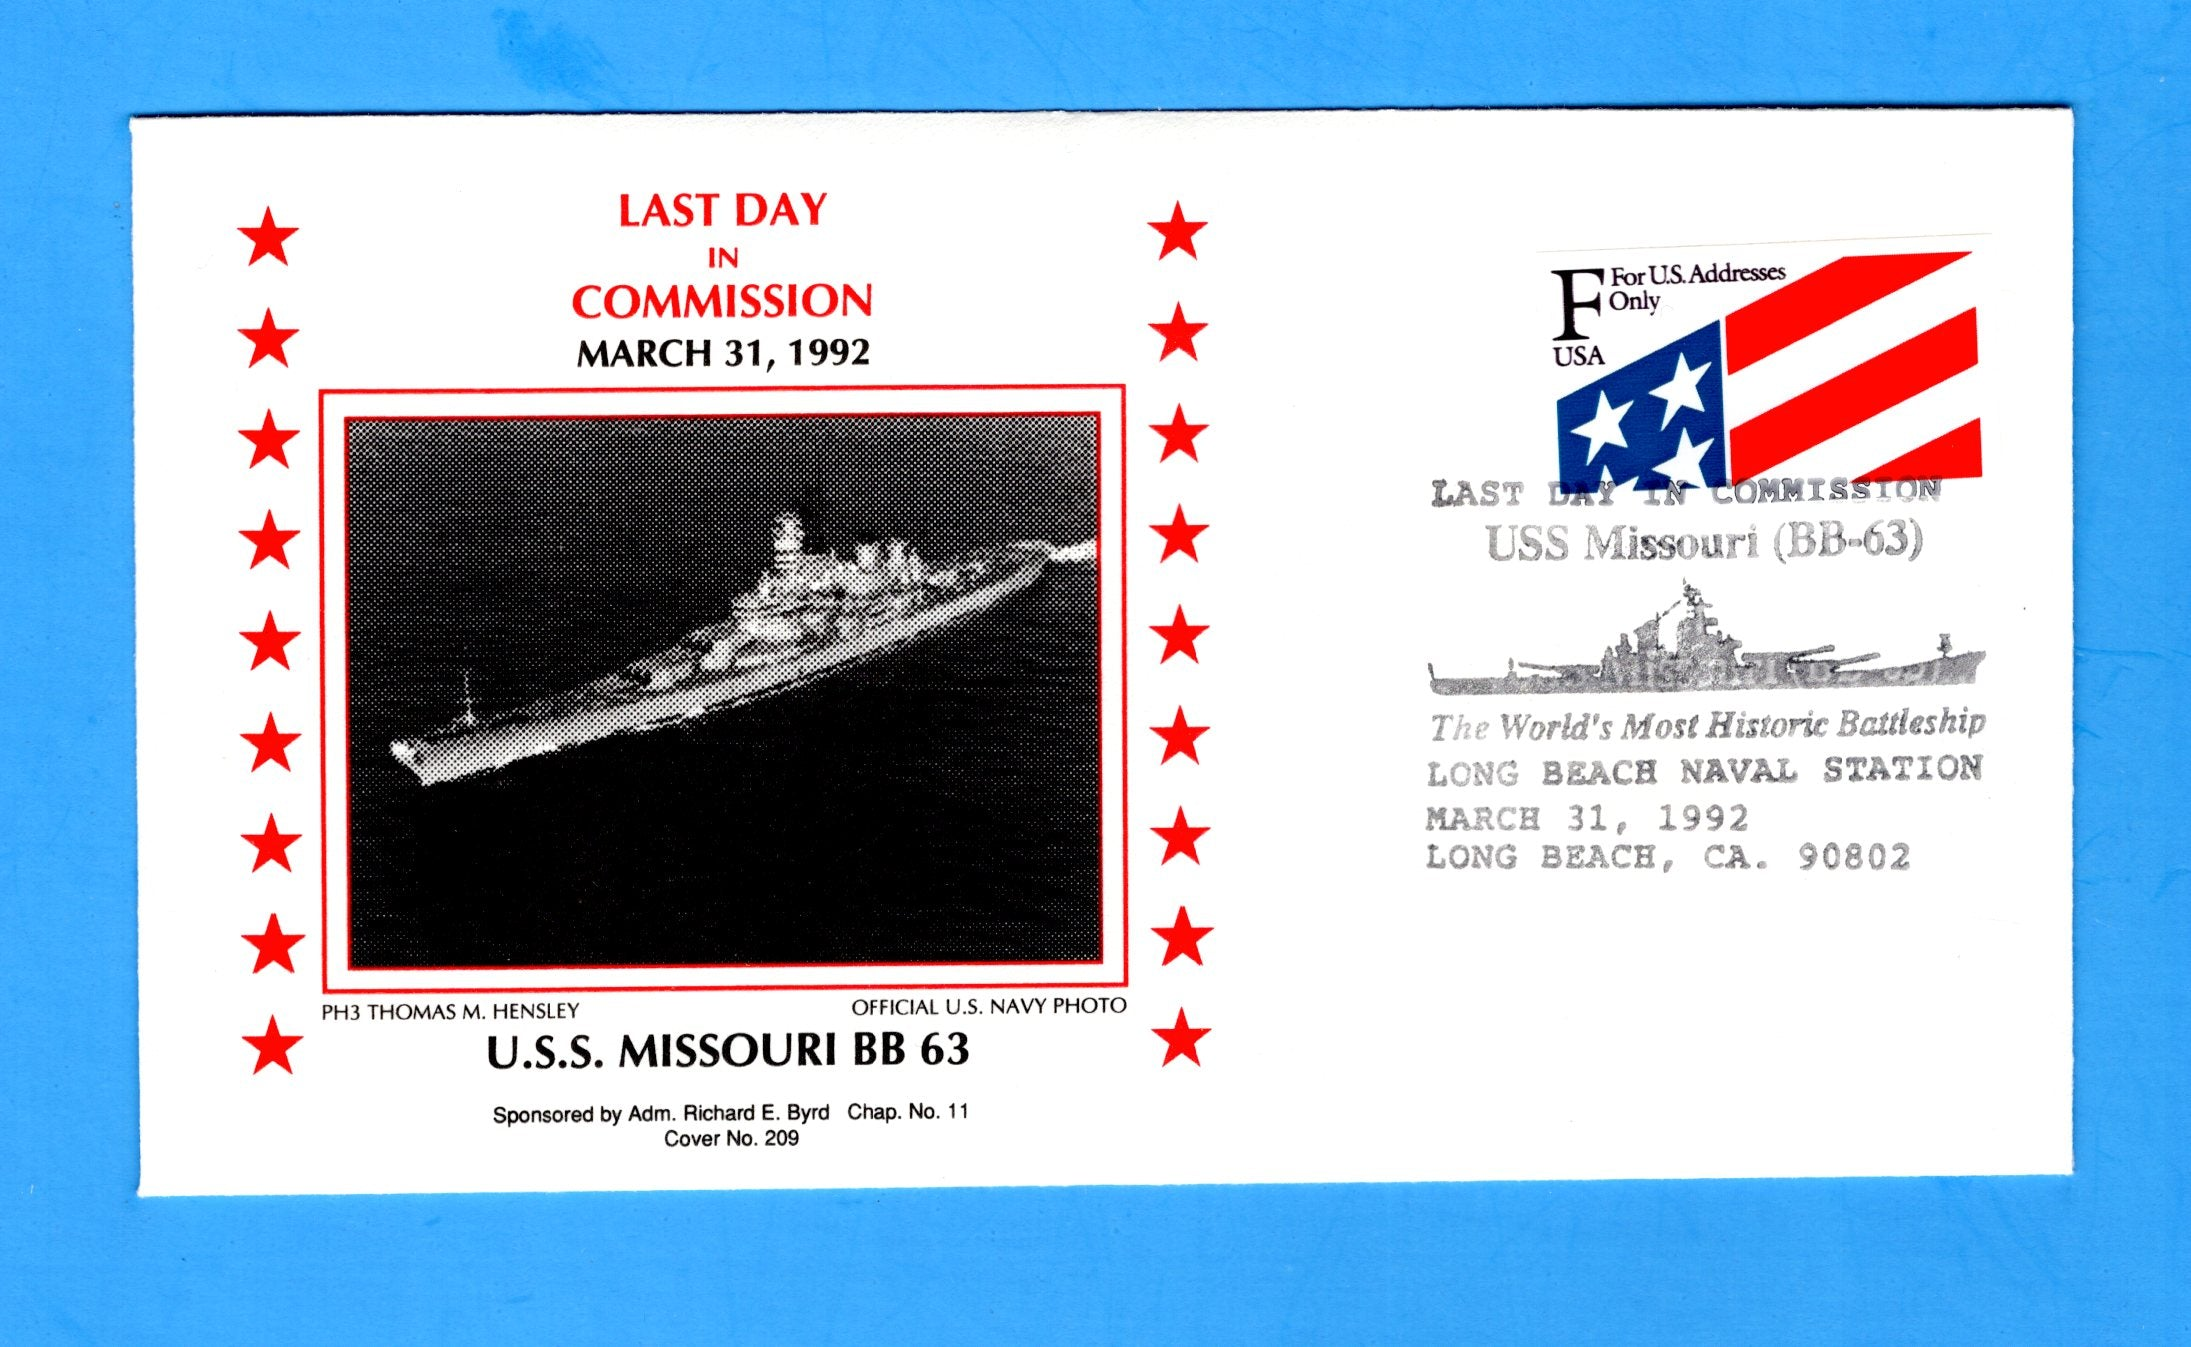 USS Missouri BB-63 Last Day in Commission March 31, 1992